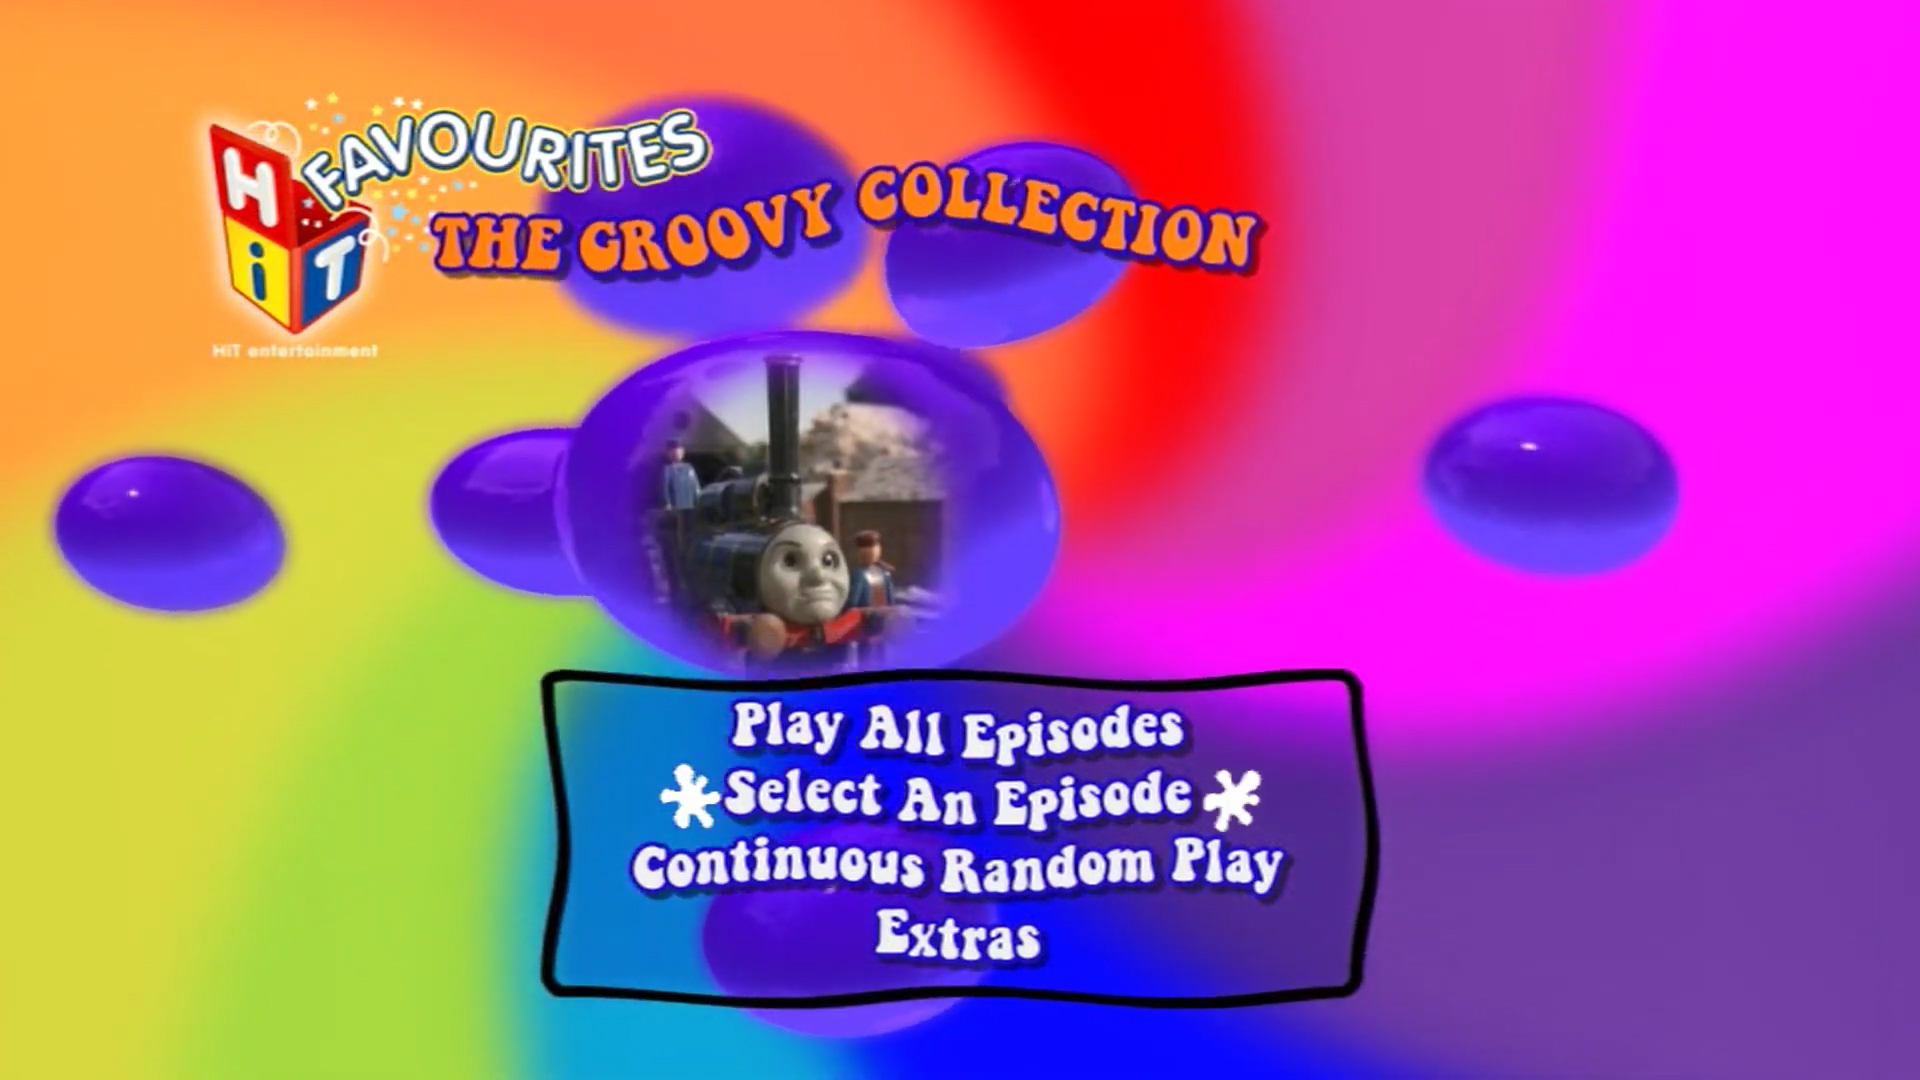 File:TheGroovyCollectionDVDmenu.jpg